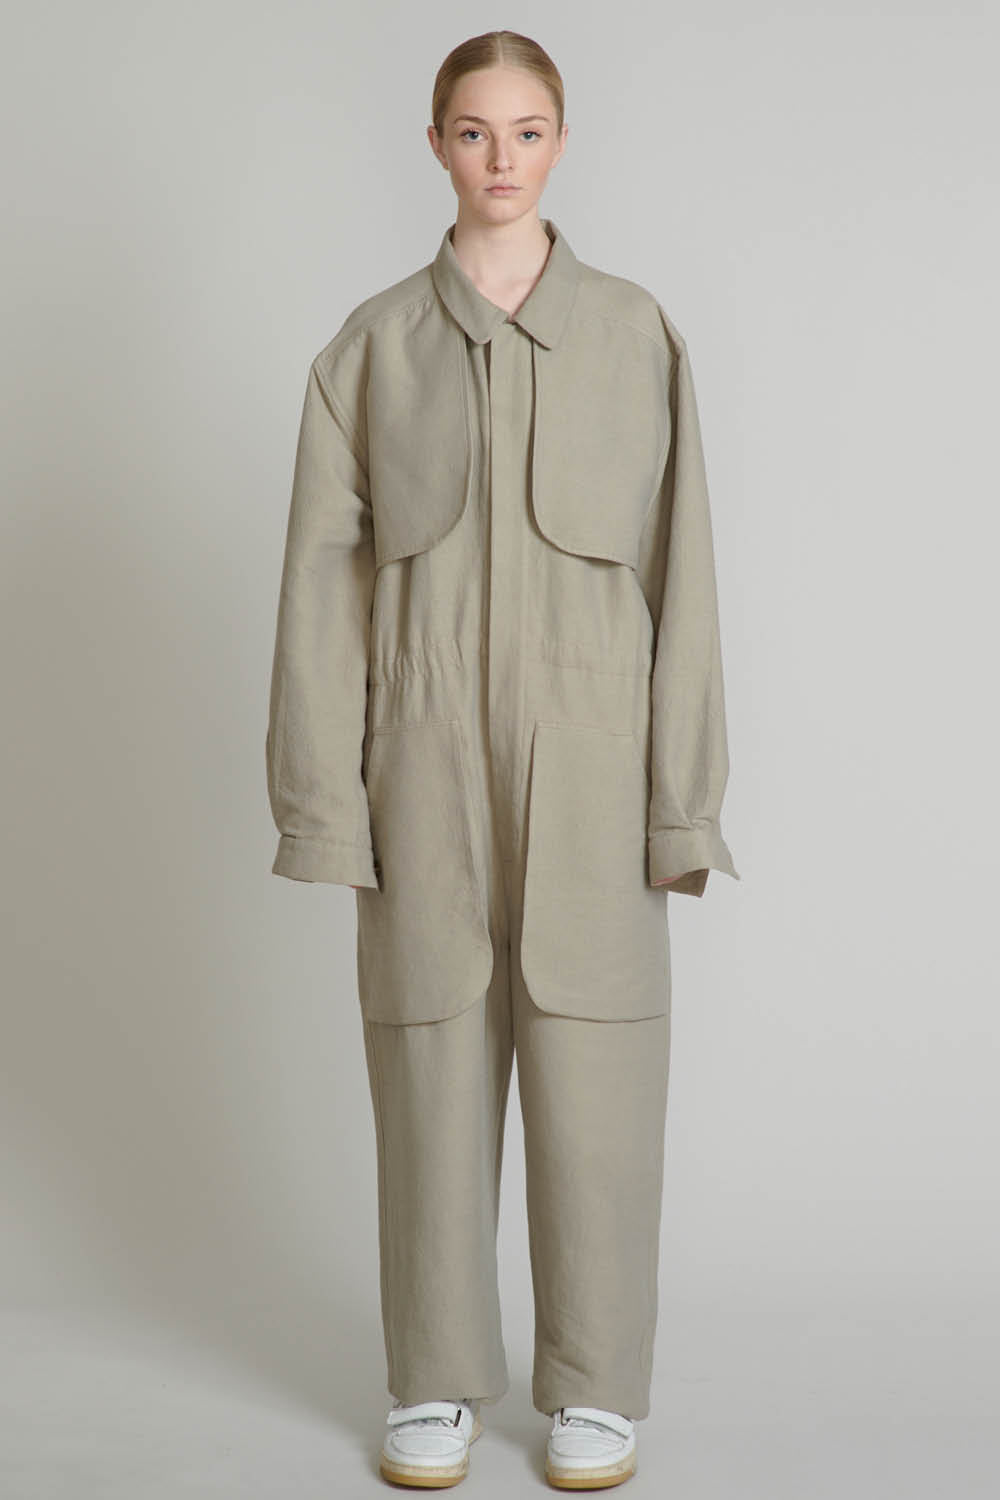 THE COMPOSER JUMPSUIT IN LIGHT GREY